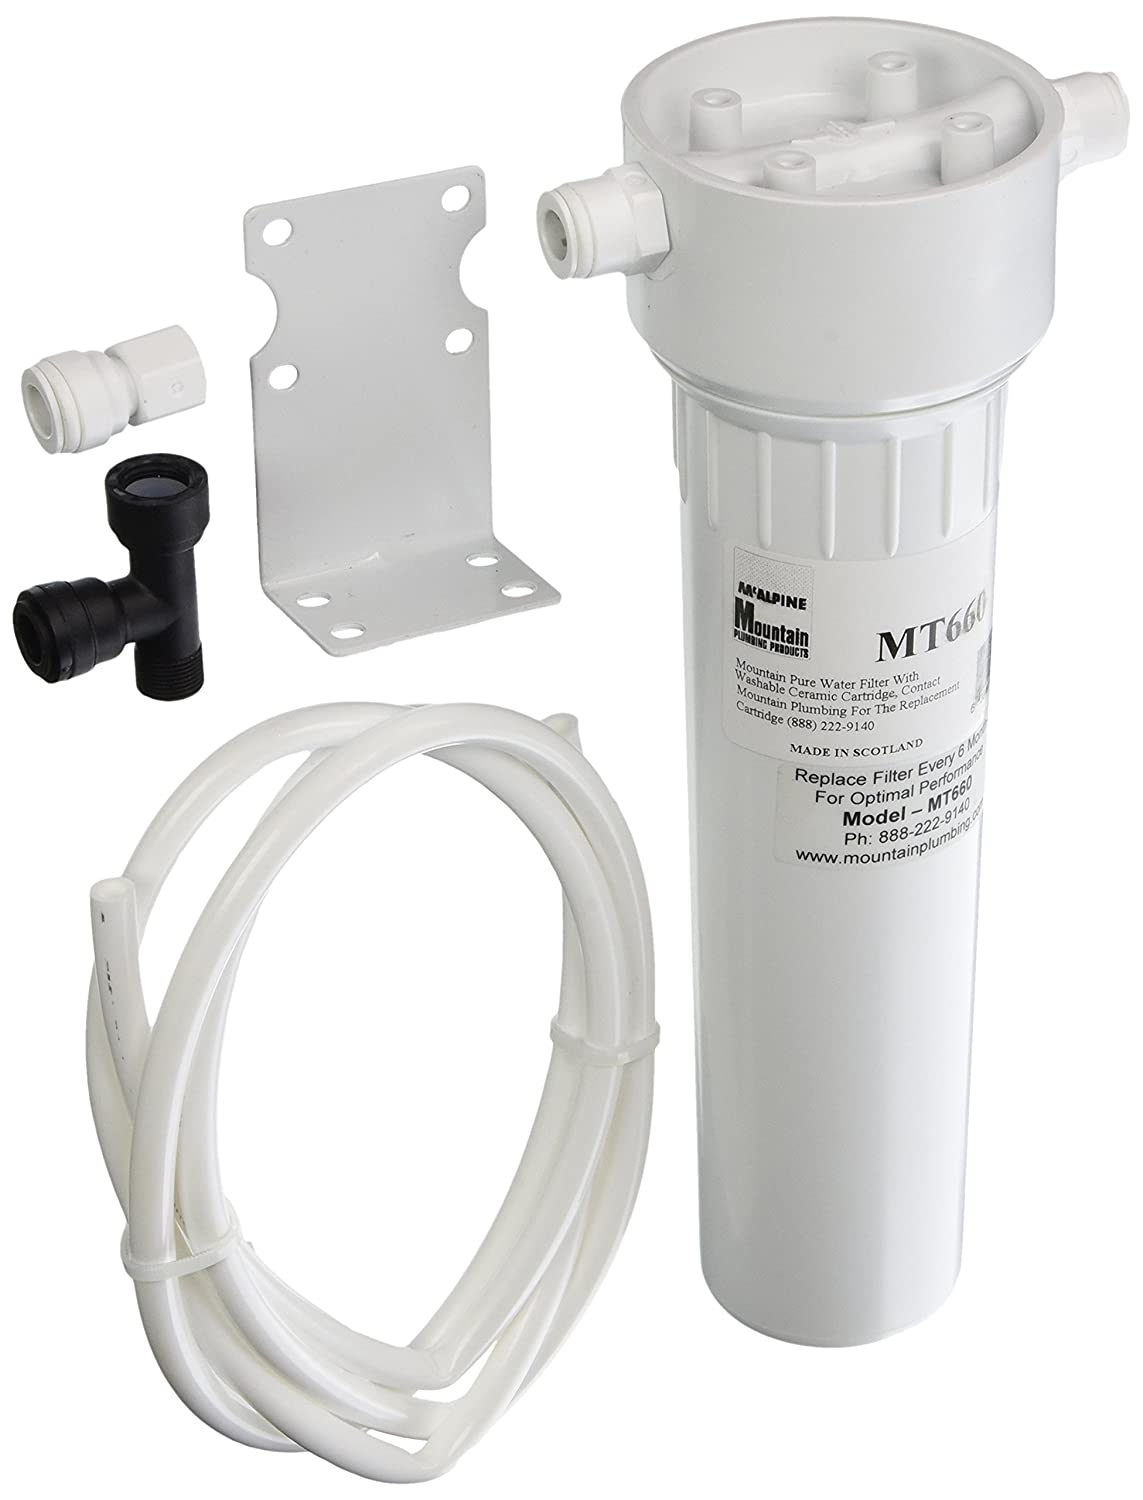 Mountain Plumbing 660 Mountain Pure Water Filter System Including MT660 by Mountain Plumbing